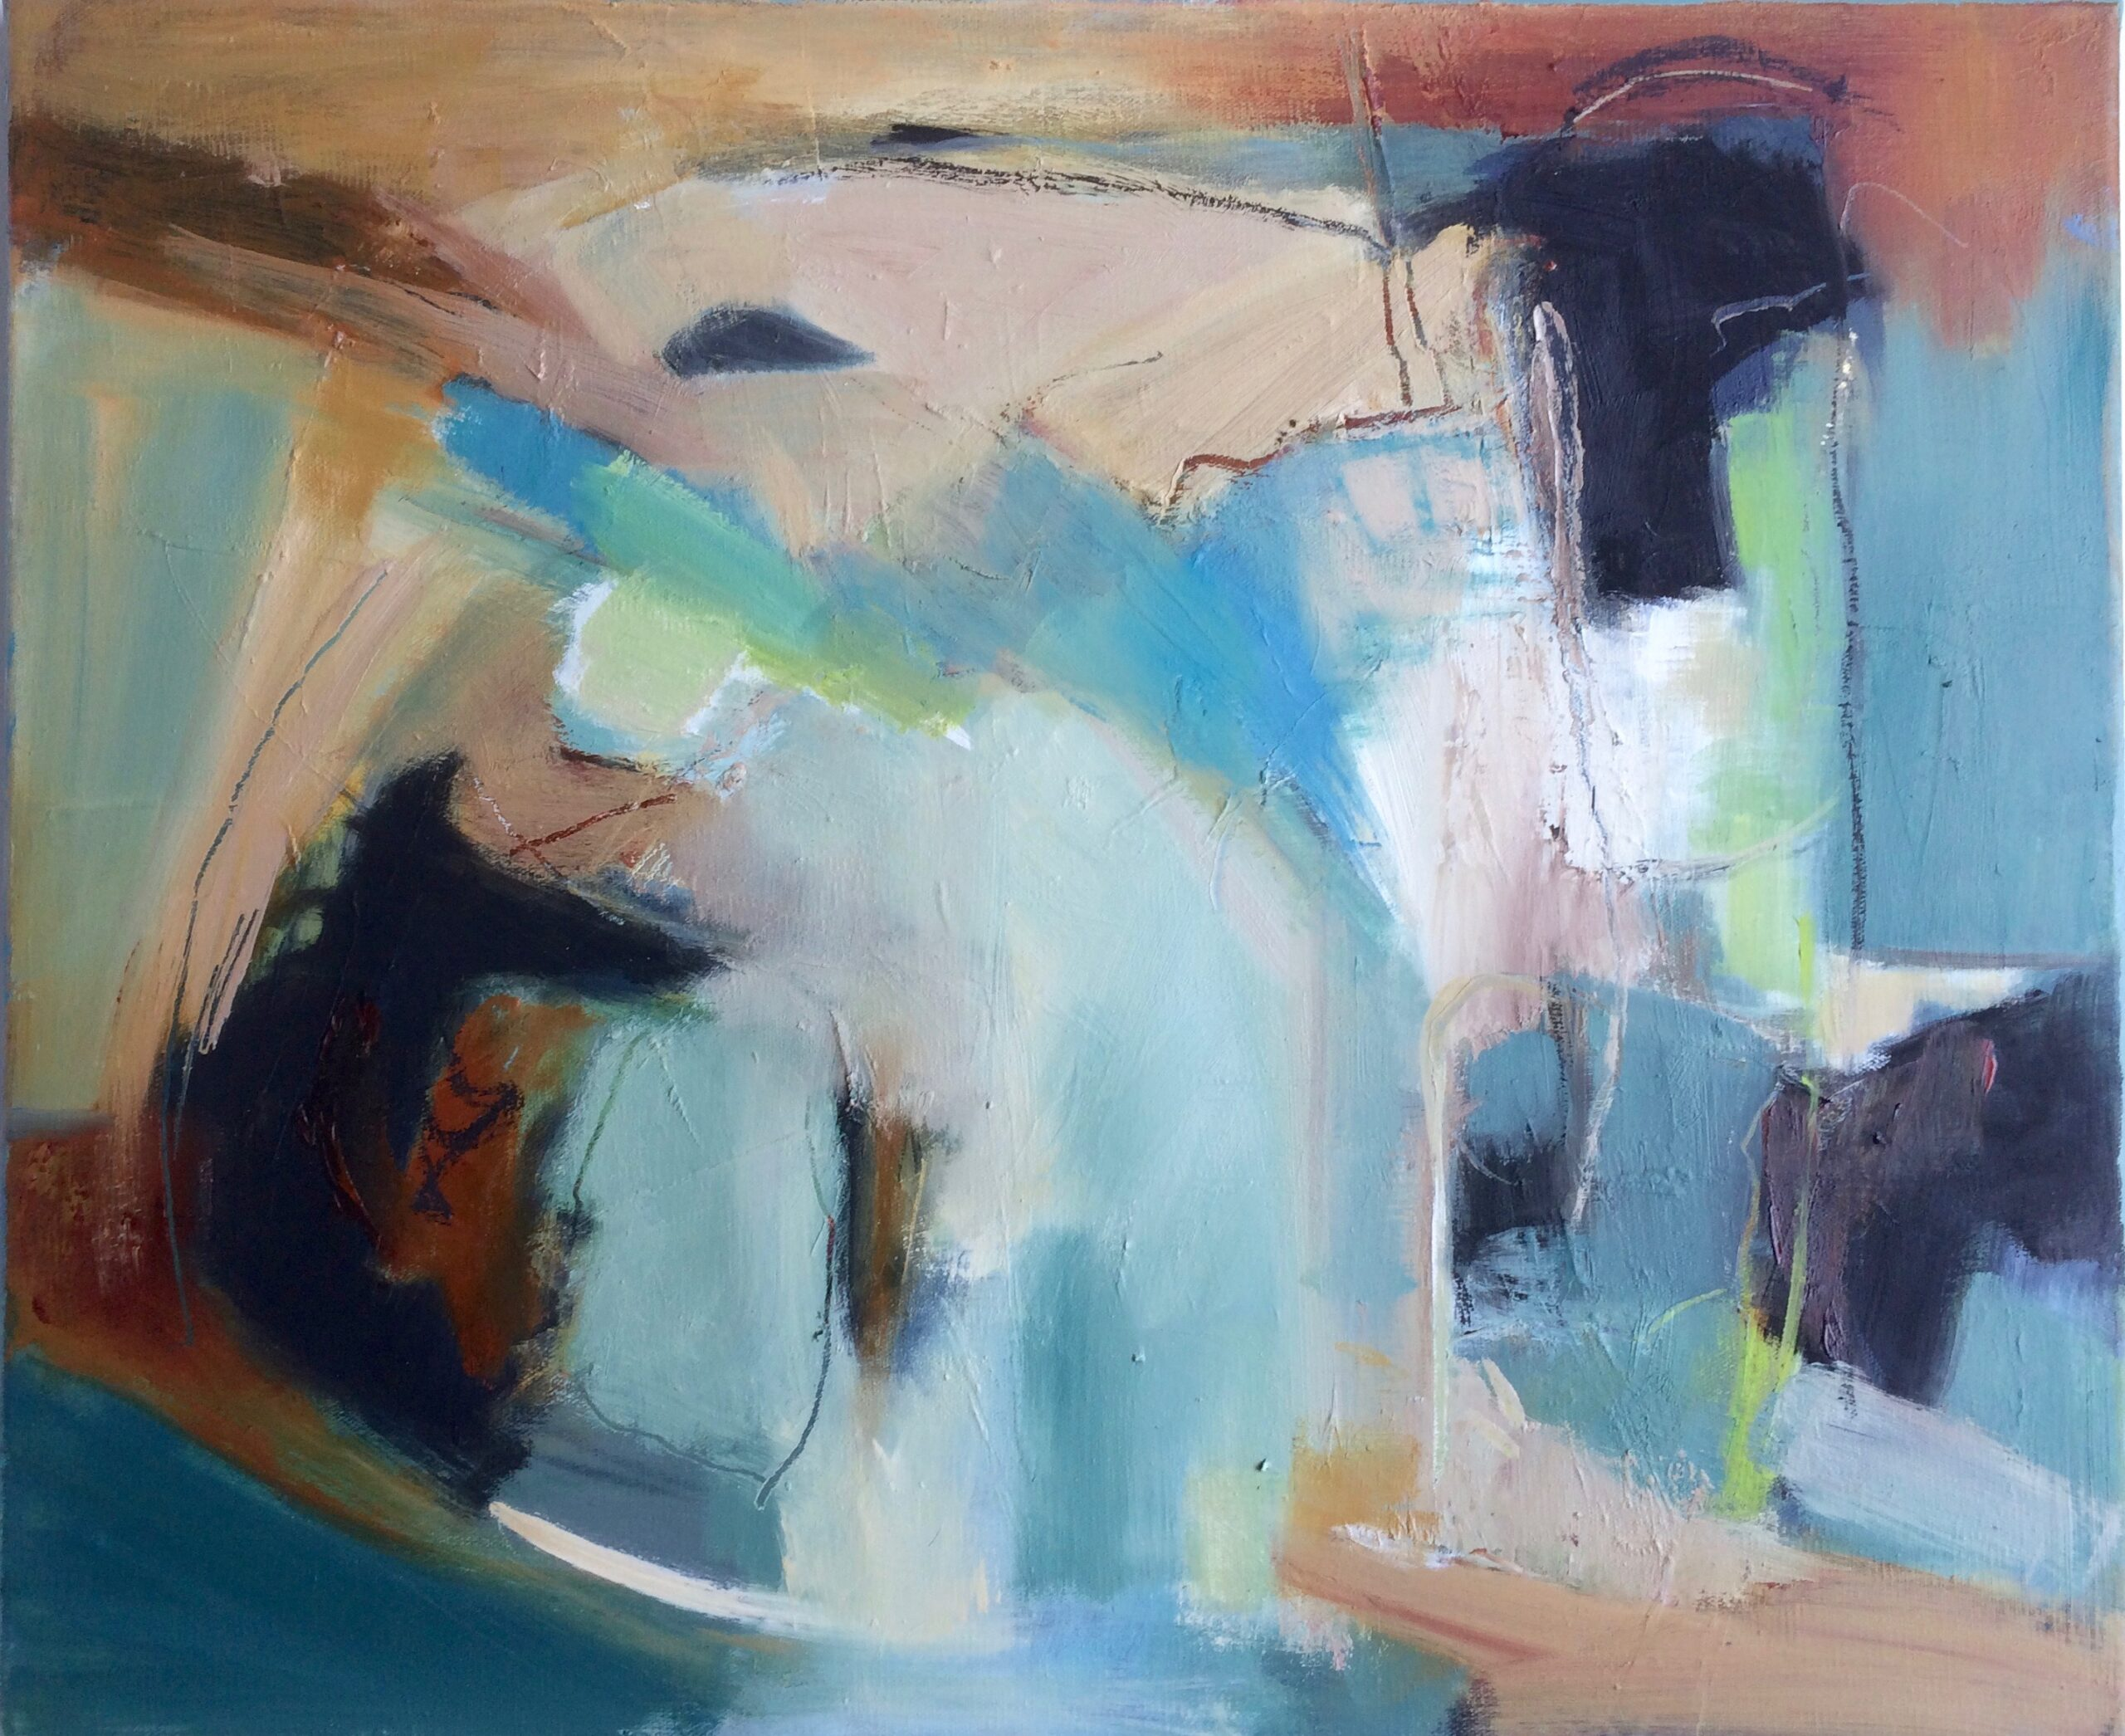 Floating abstract oil painting